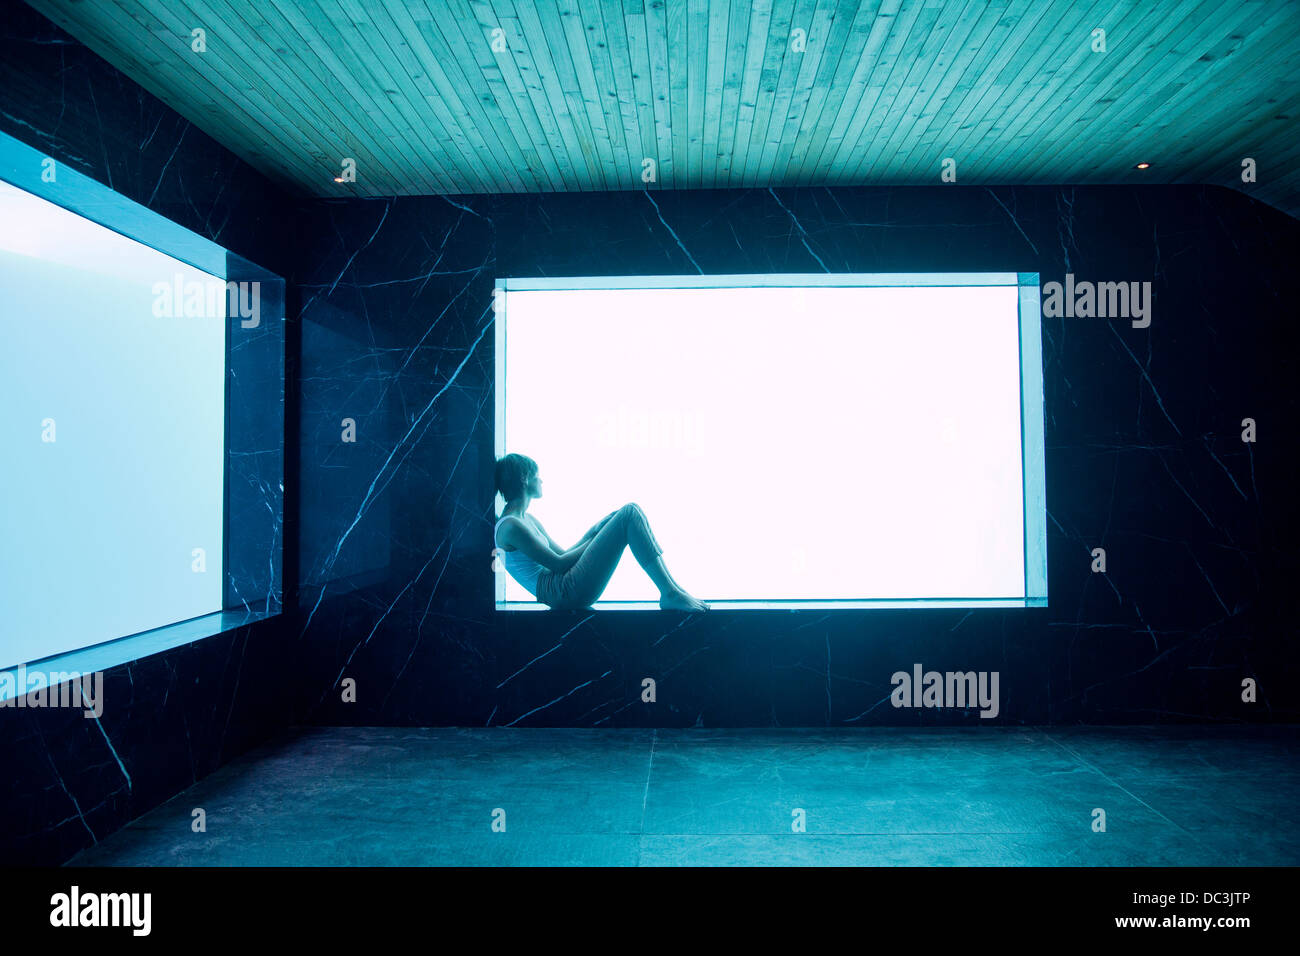 Woman sitting on ledge at window in pool room - Stock Image